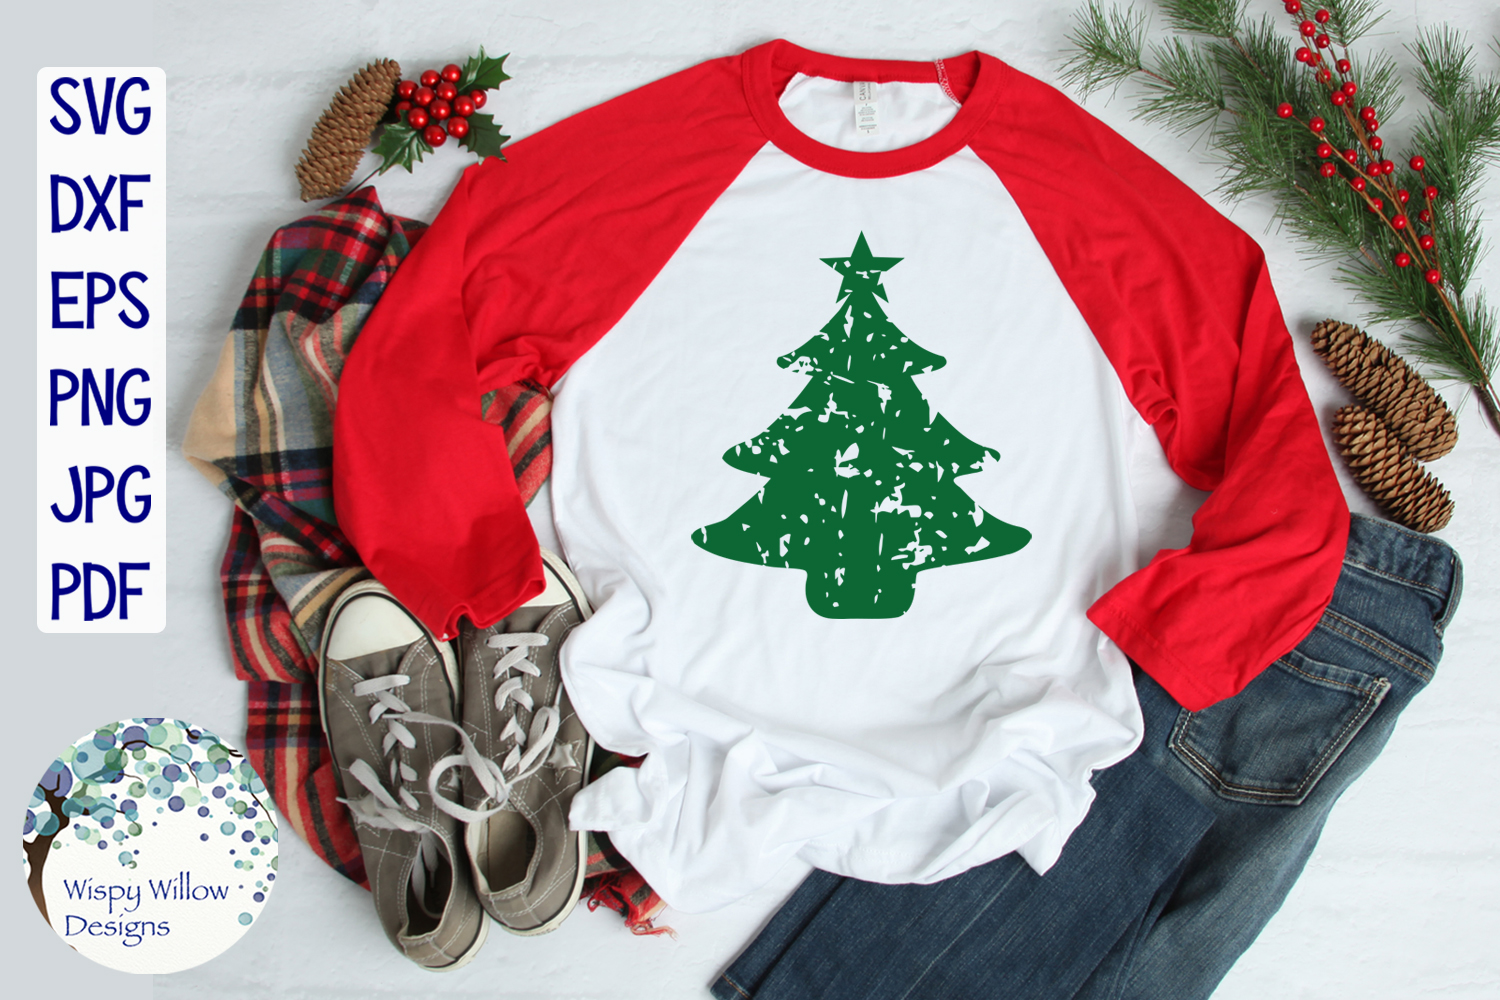 Distressed Grunge Christmas Tree | Christmas SVG example image 2